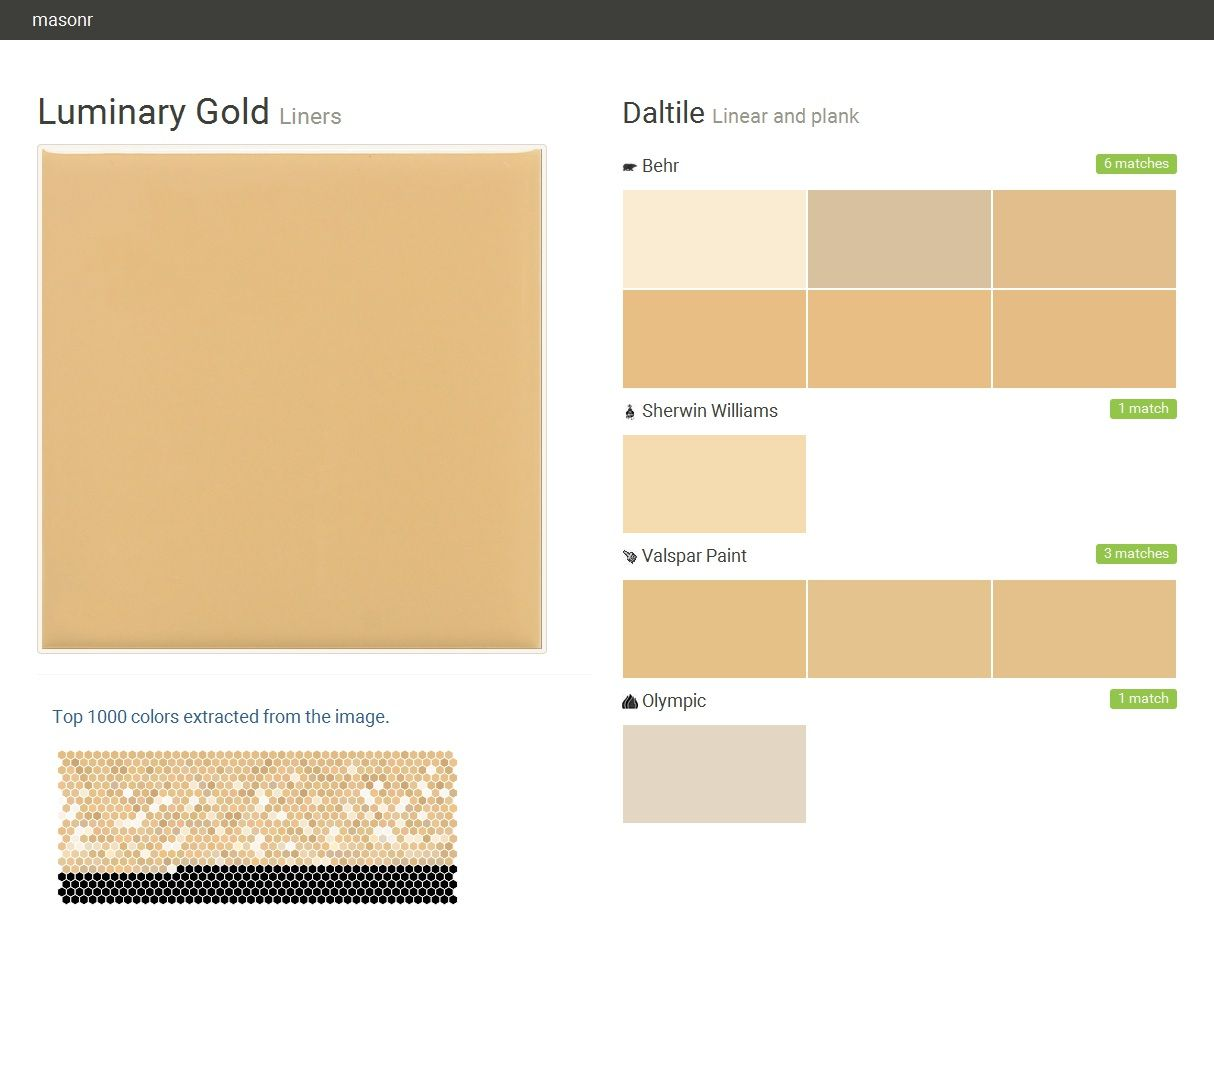 Luminary Gold. Liners. Linear and plank. Daltile. Behr. Sherwin Williams. Valspar Paint. Olympic.  Click the gray Visit button to see the matching paint names.